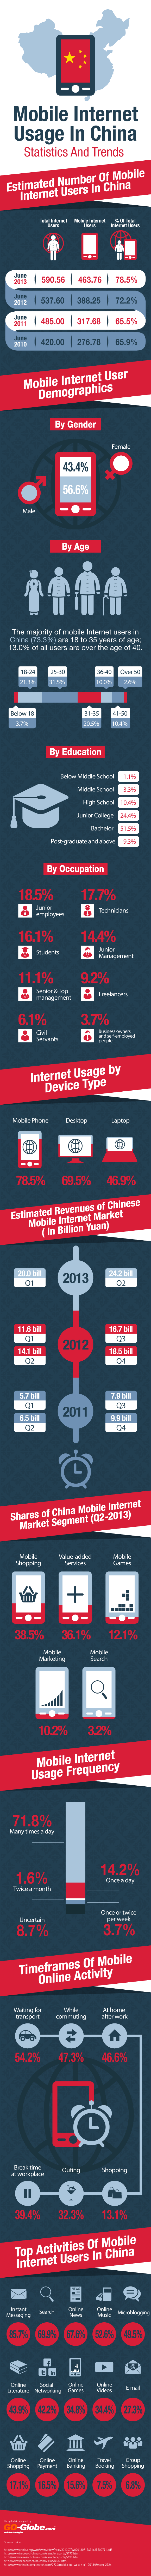 Mobile Internet Usage In China – Statistics And Trends